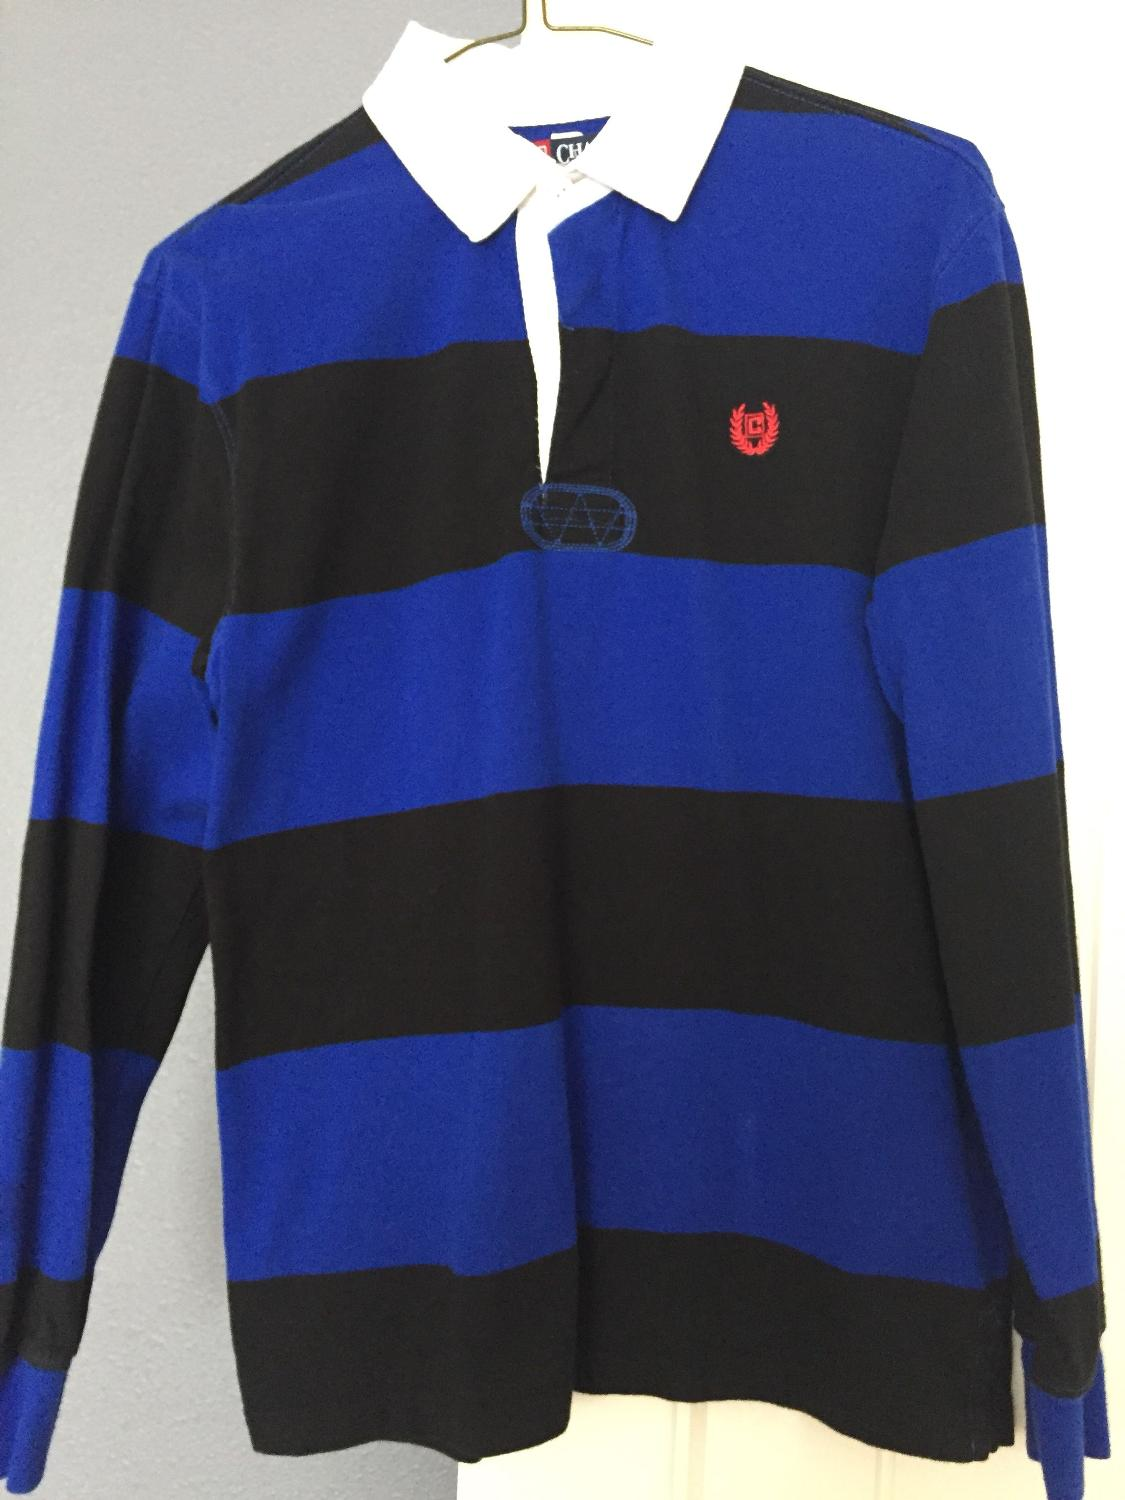 cb306c1f6d1 Best Boys Chaps Long Sleeve Rugby Shirt for sale in Jefferson City,  Missouri for 2019